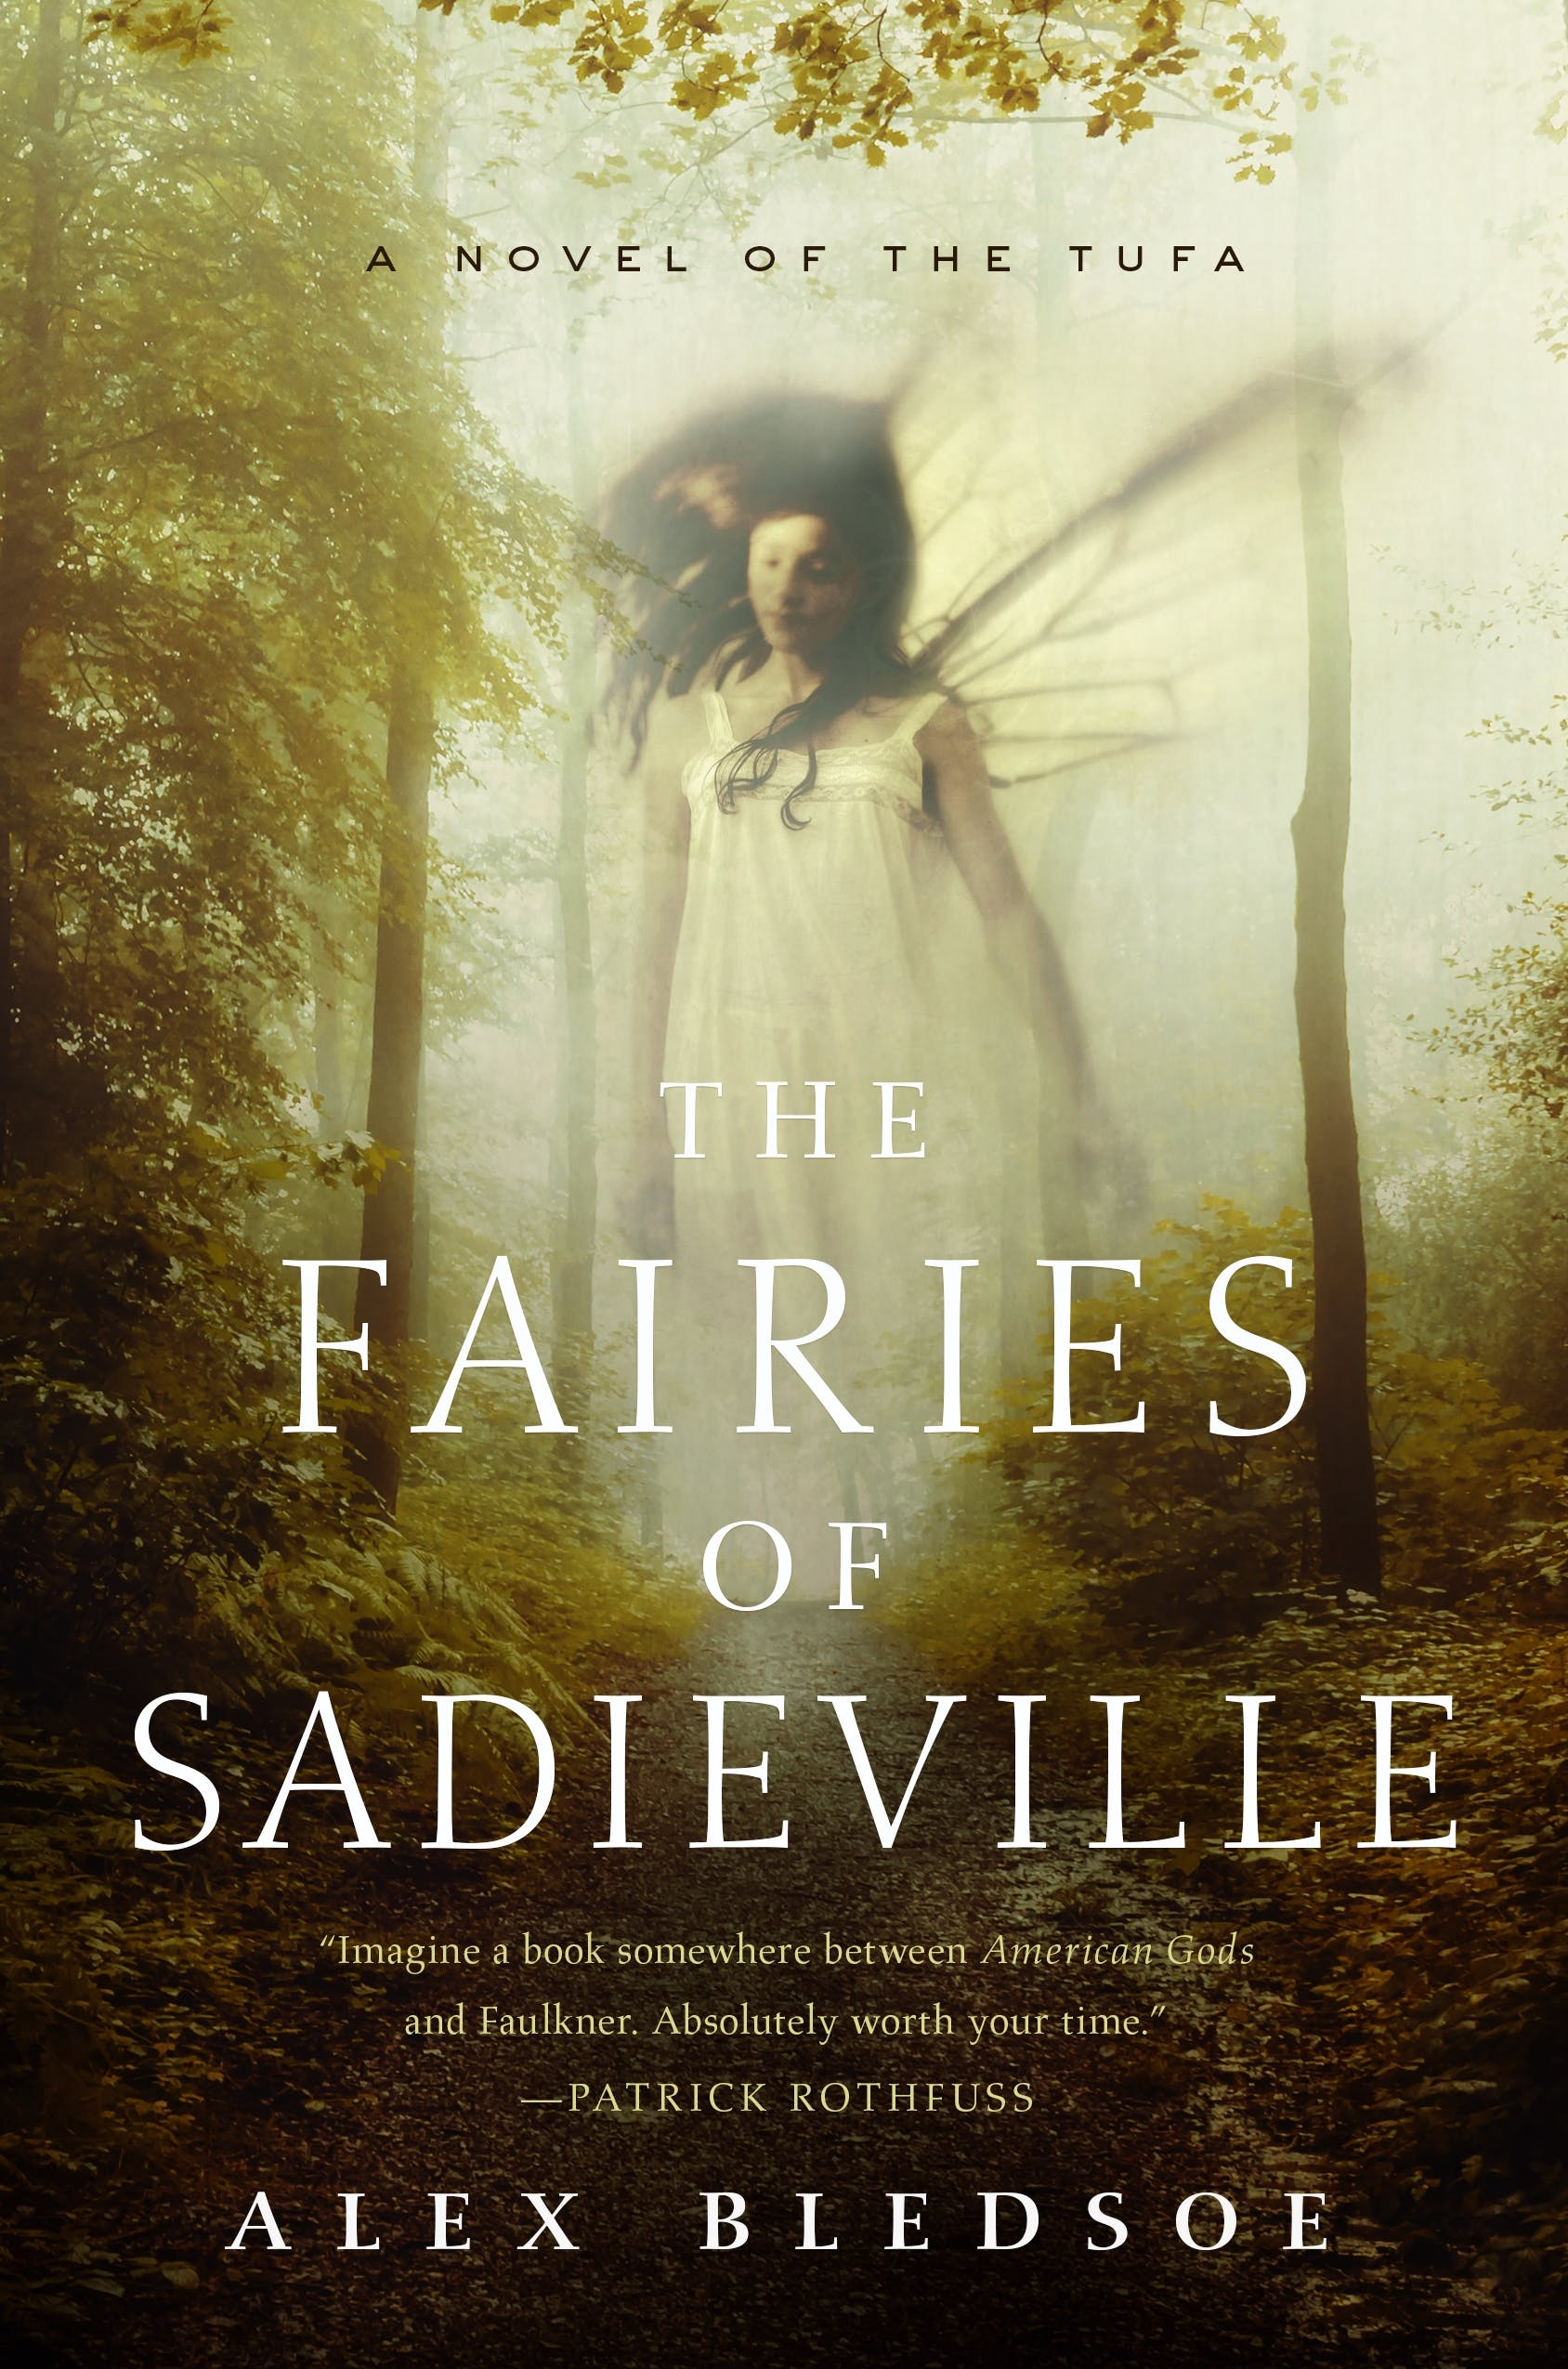 Image of The Fairies of Sadieville